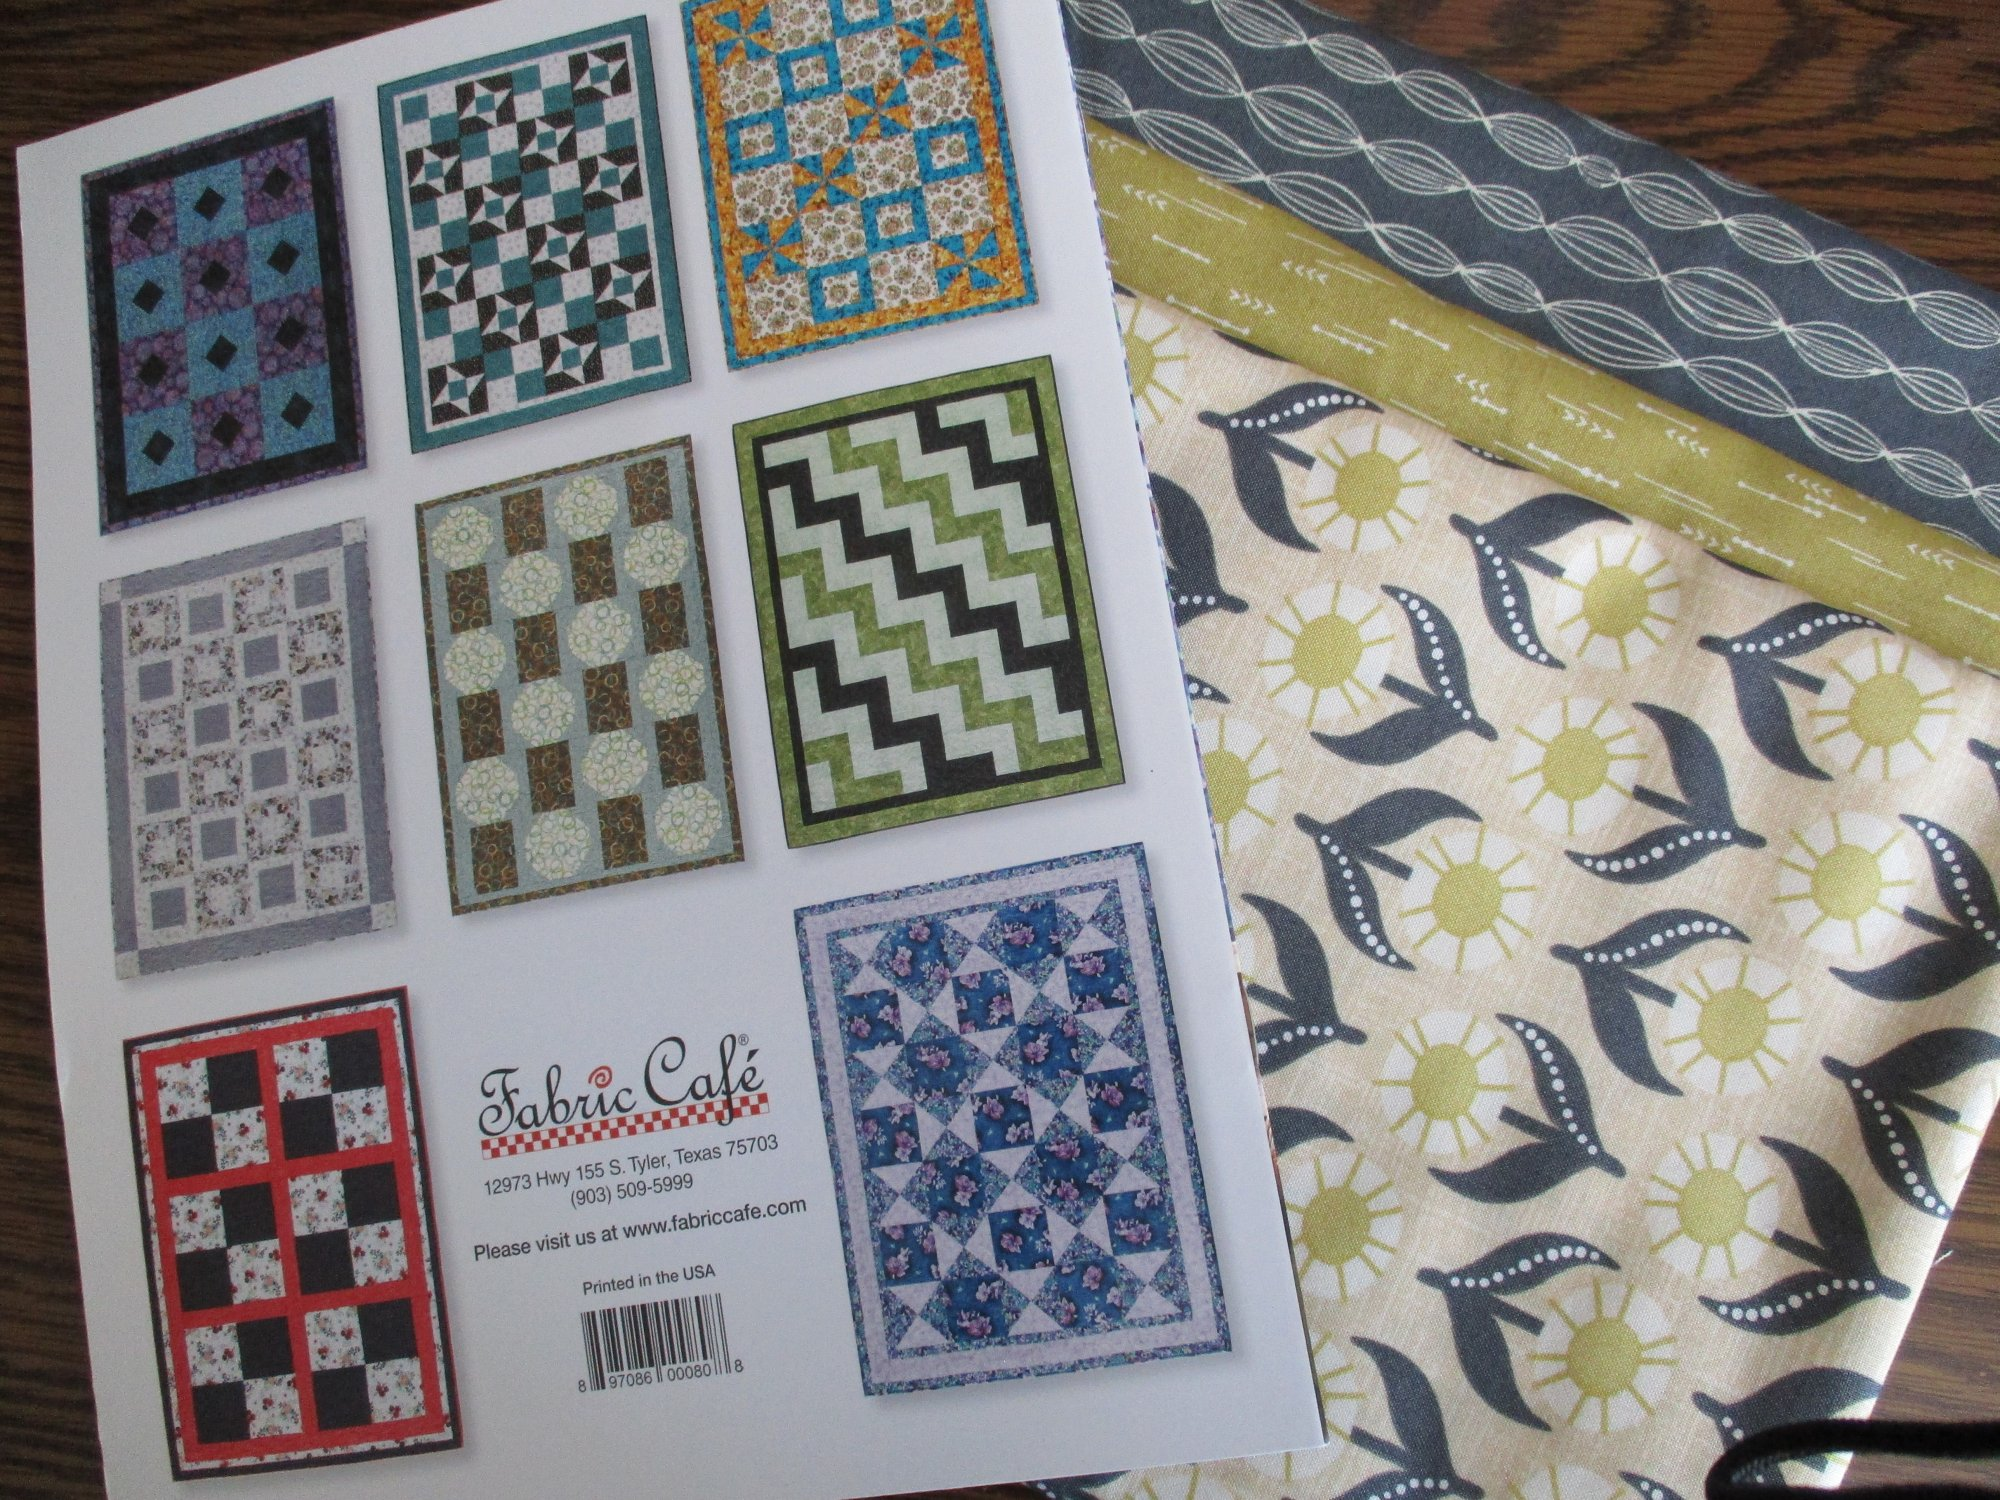 Easy Does It 3-Yard Quilts kit